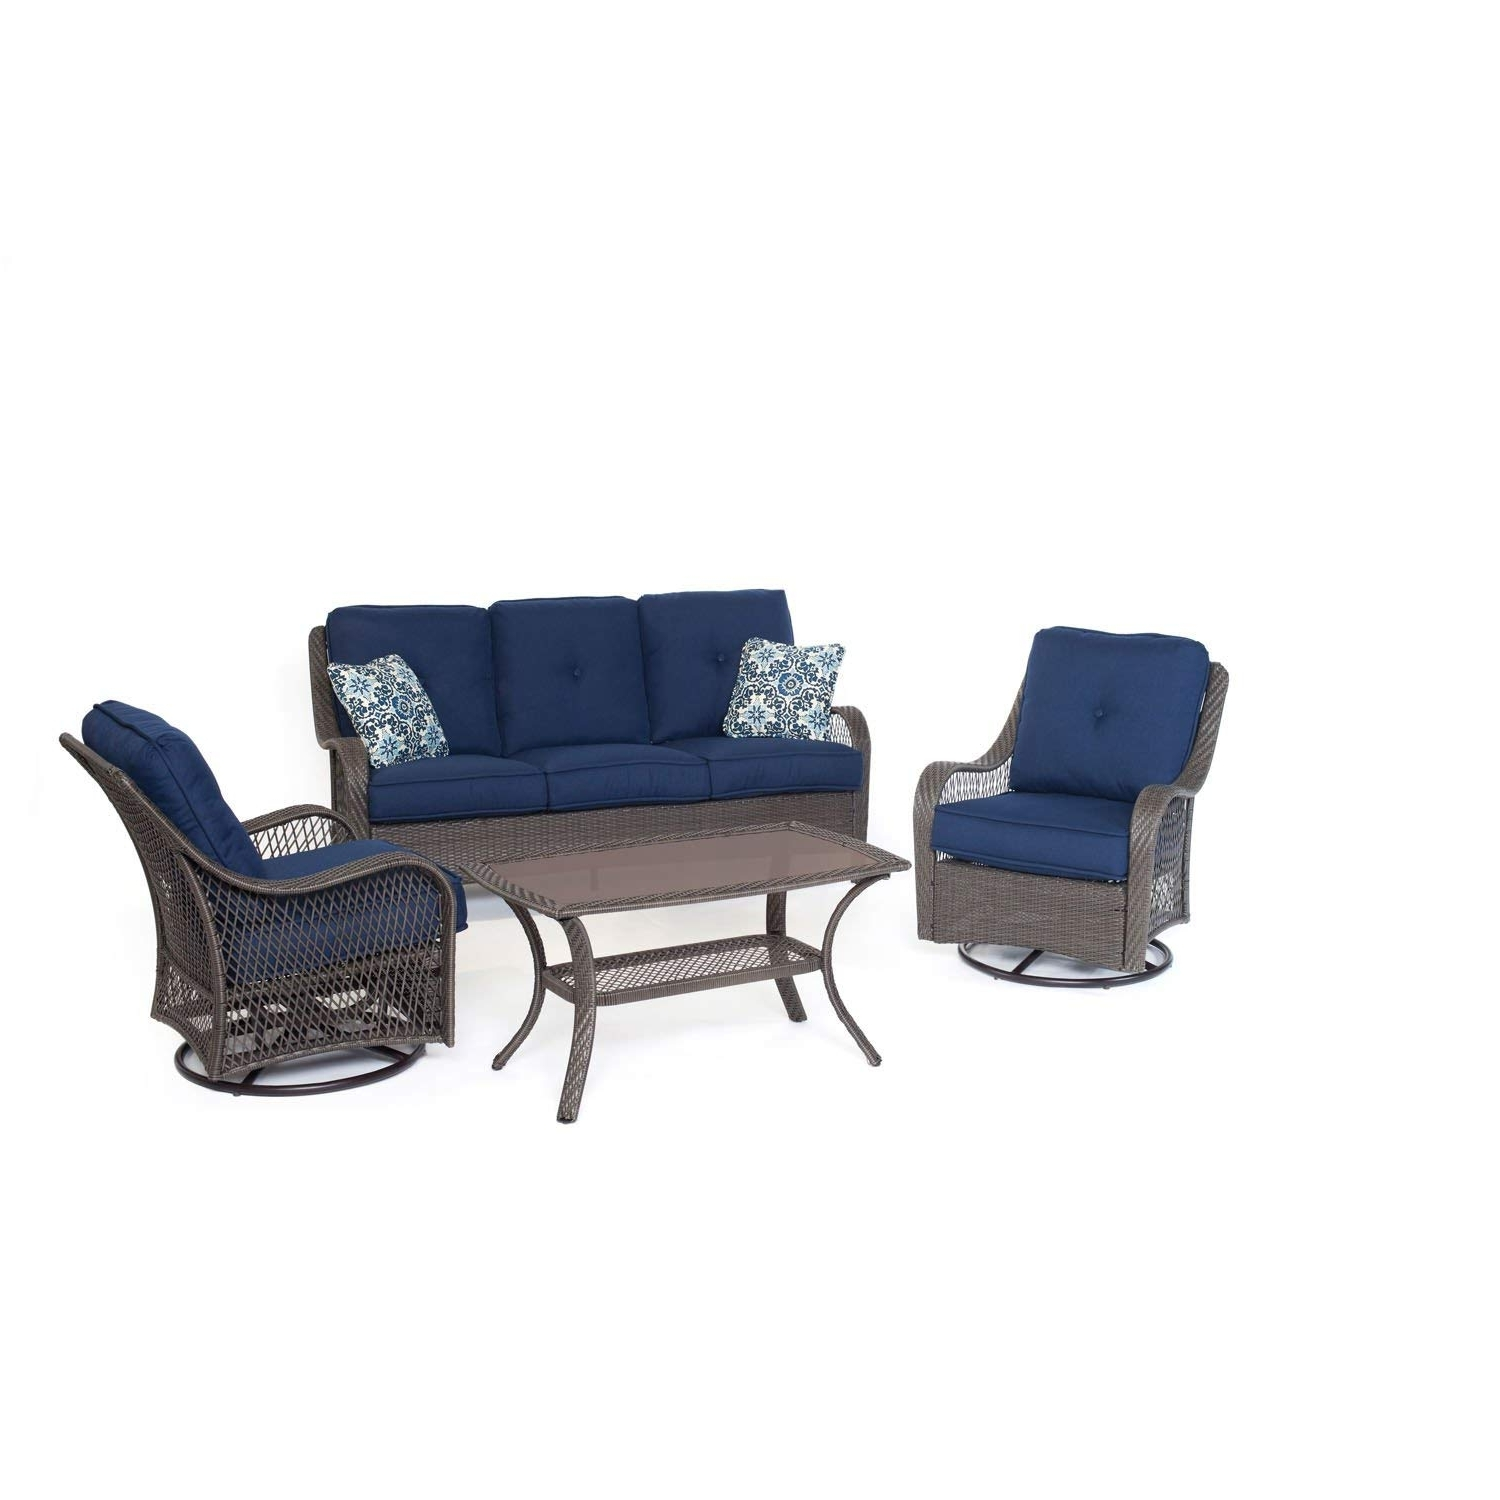 Amazon : Cambridge 4 Piece Hanover Outdoor Merritt All Weather Throughout 2017 Patio Conversation Sets With Blue Cushions (View 1 of 15)